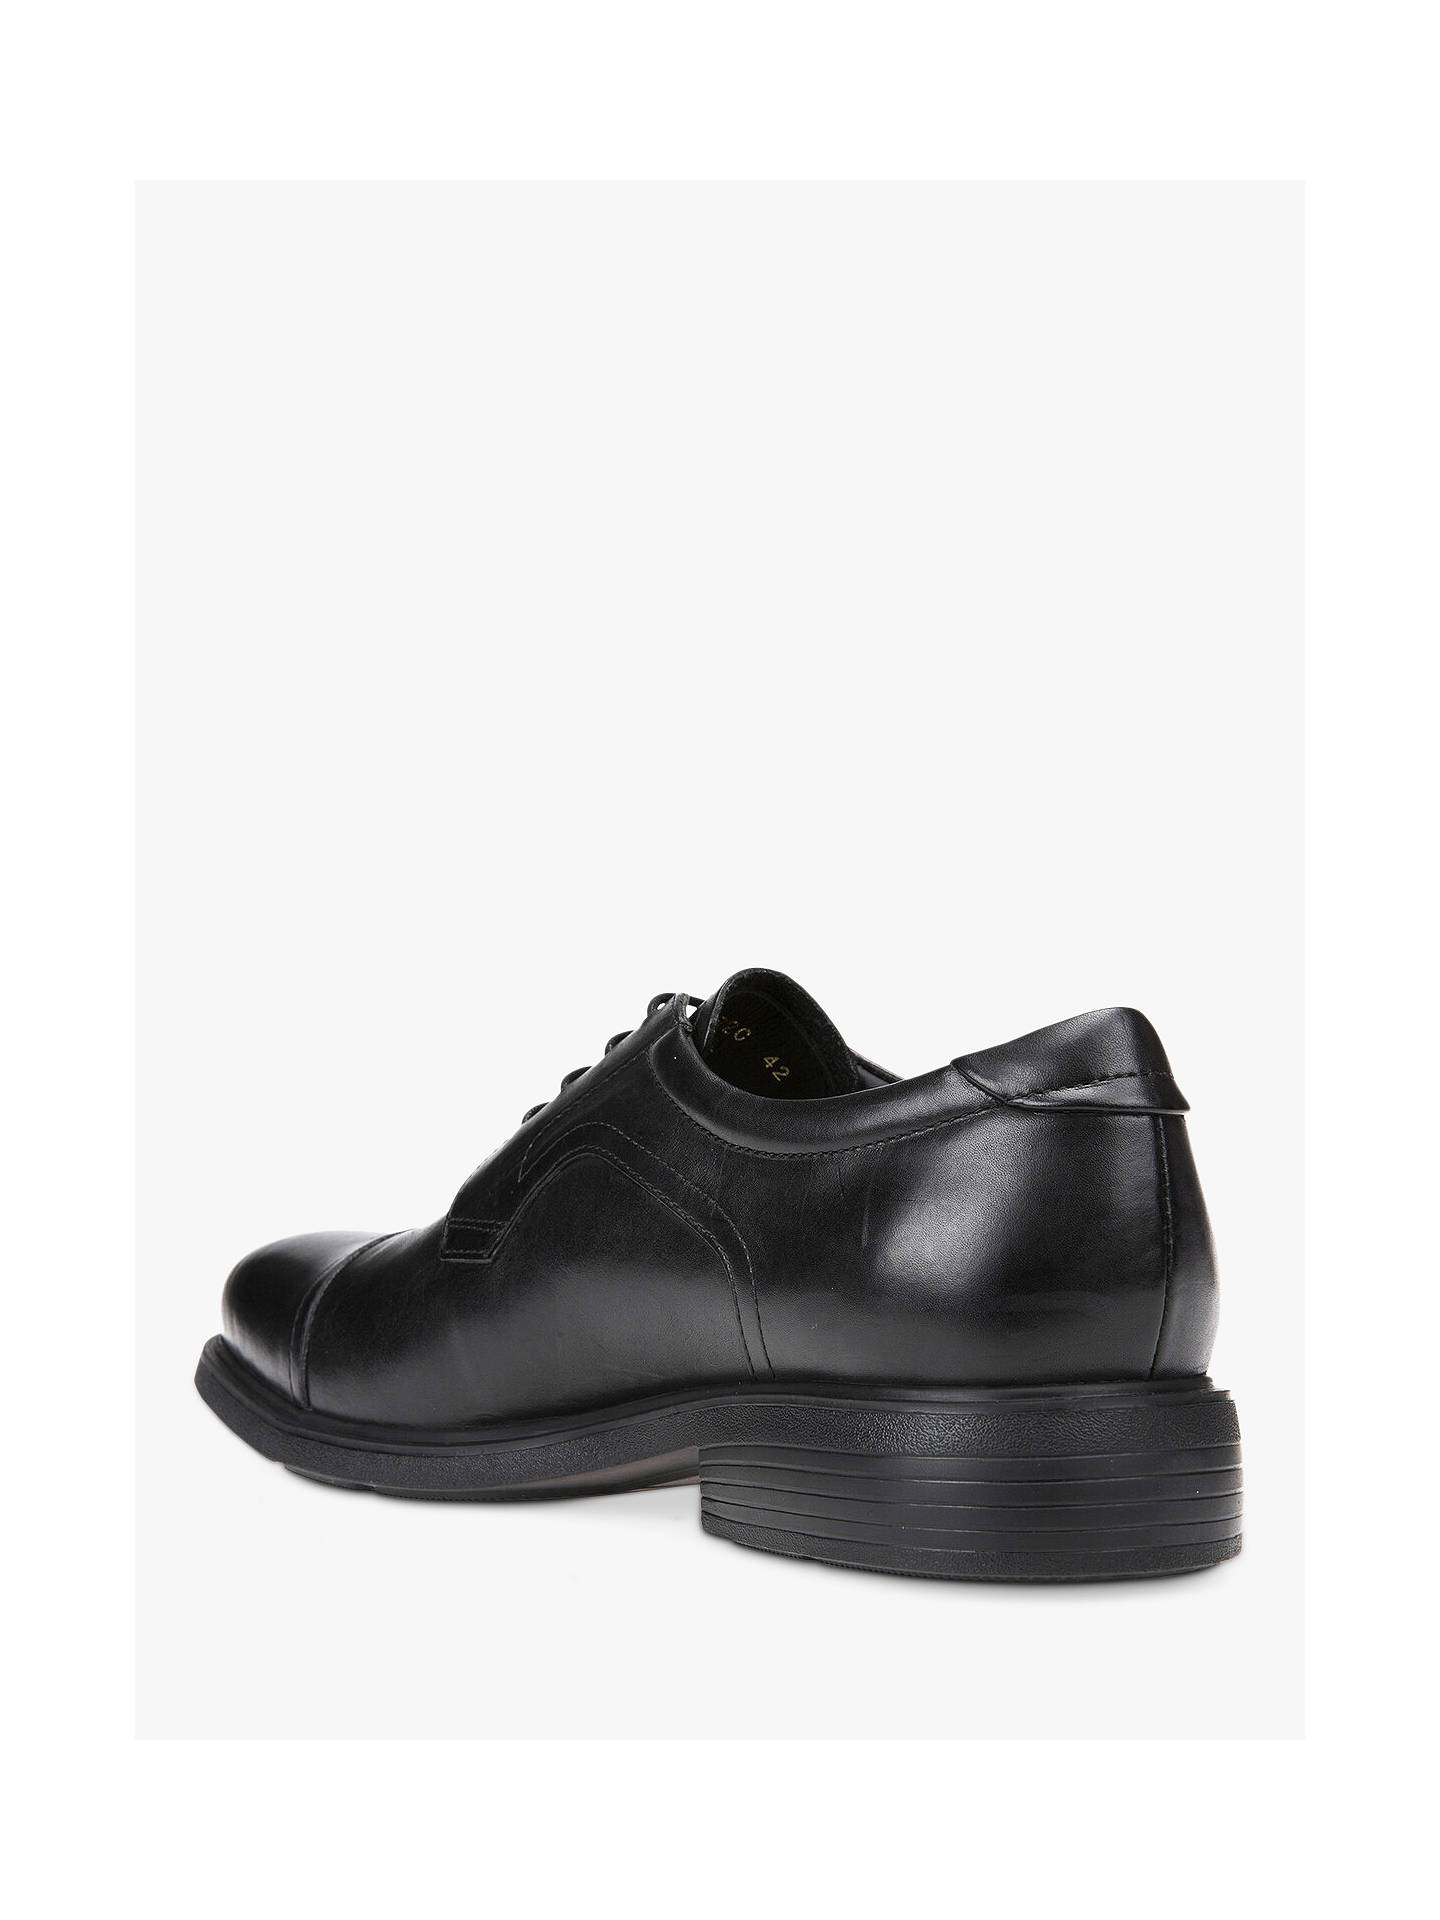 low priced 0436e e566e Geox Dublin Derby Shoes, Black at John Lewis & Partners